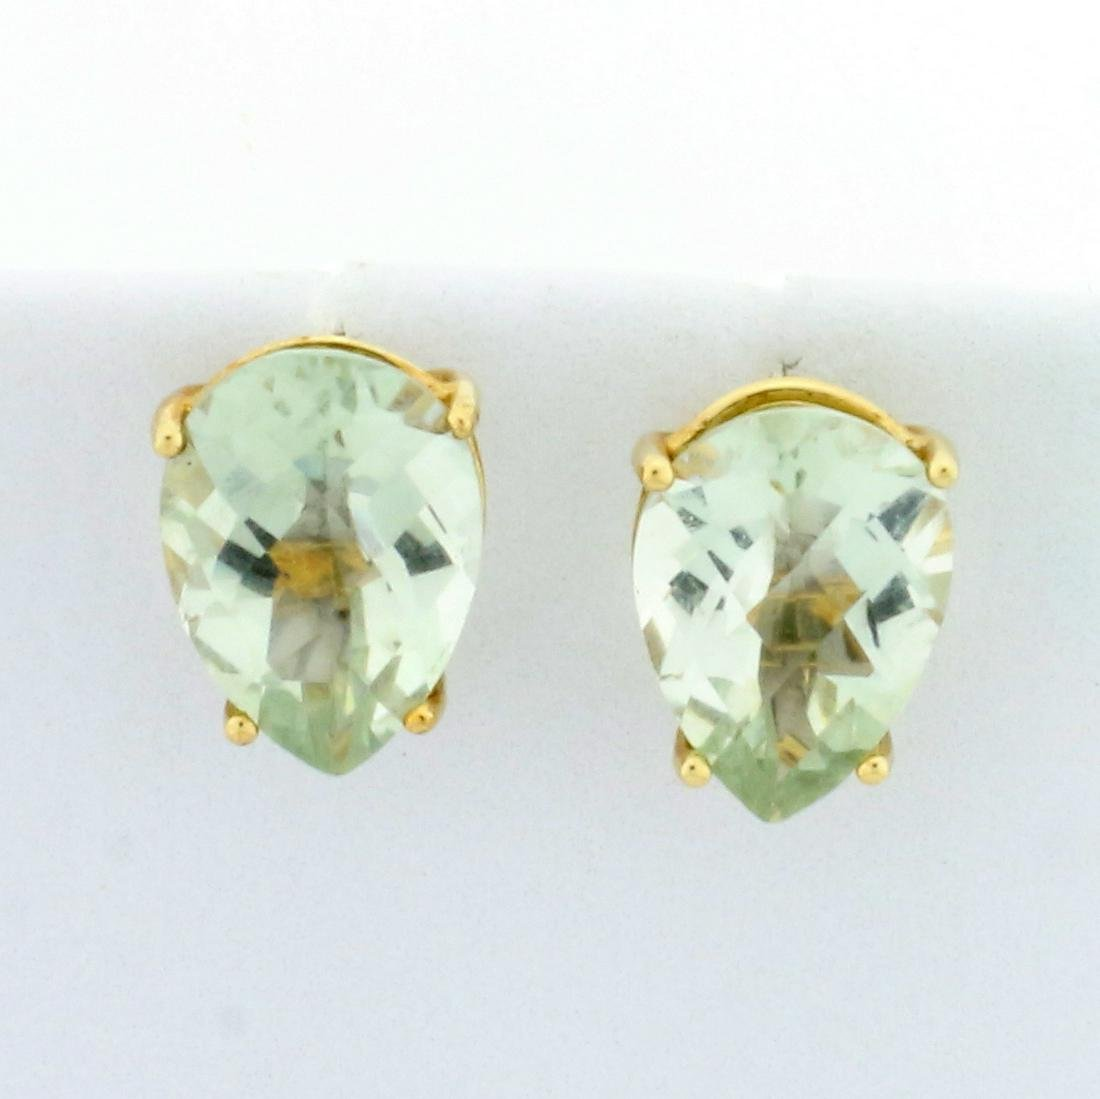 4ct TW Green Amethyst Stud Earrings in 10K Yellow Gold